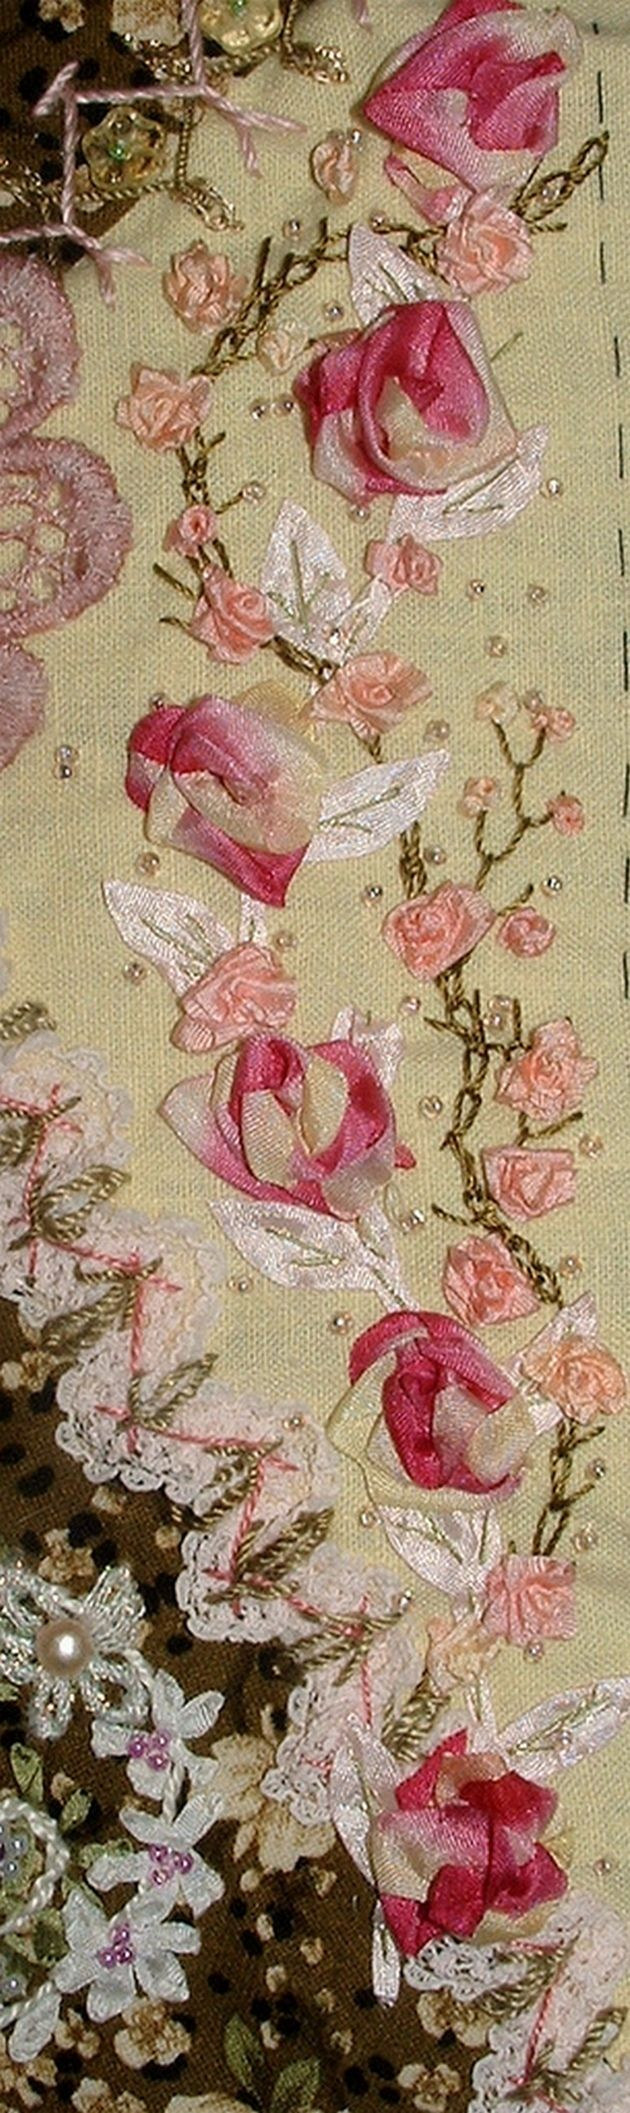 best embroidery images on pinterest embroidery lace and linens